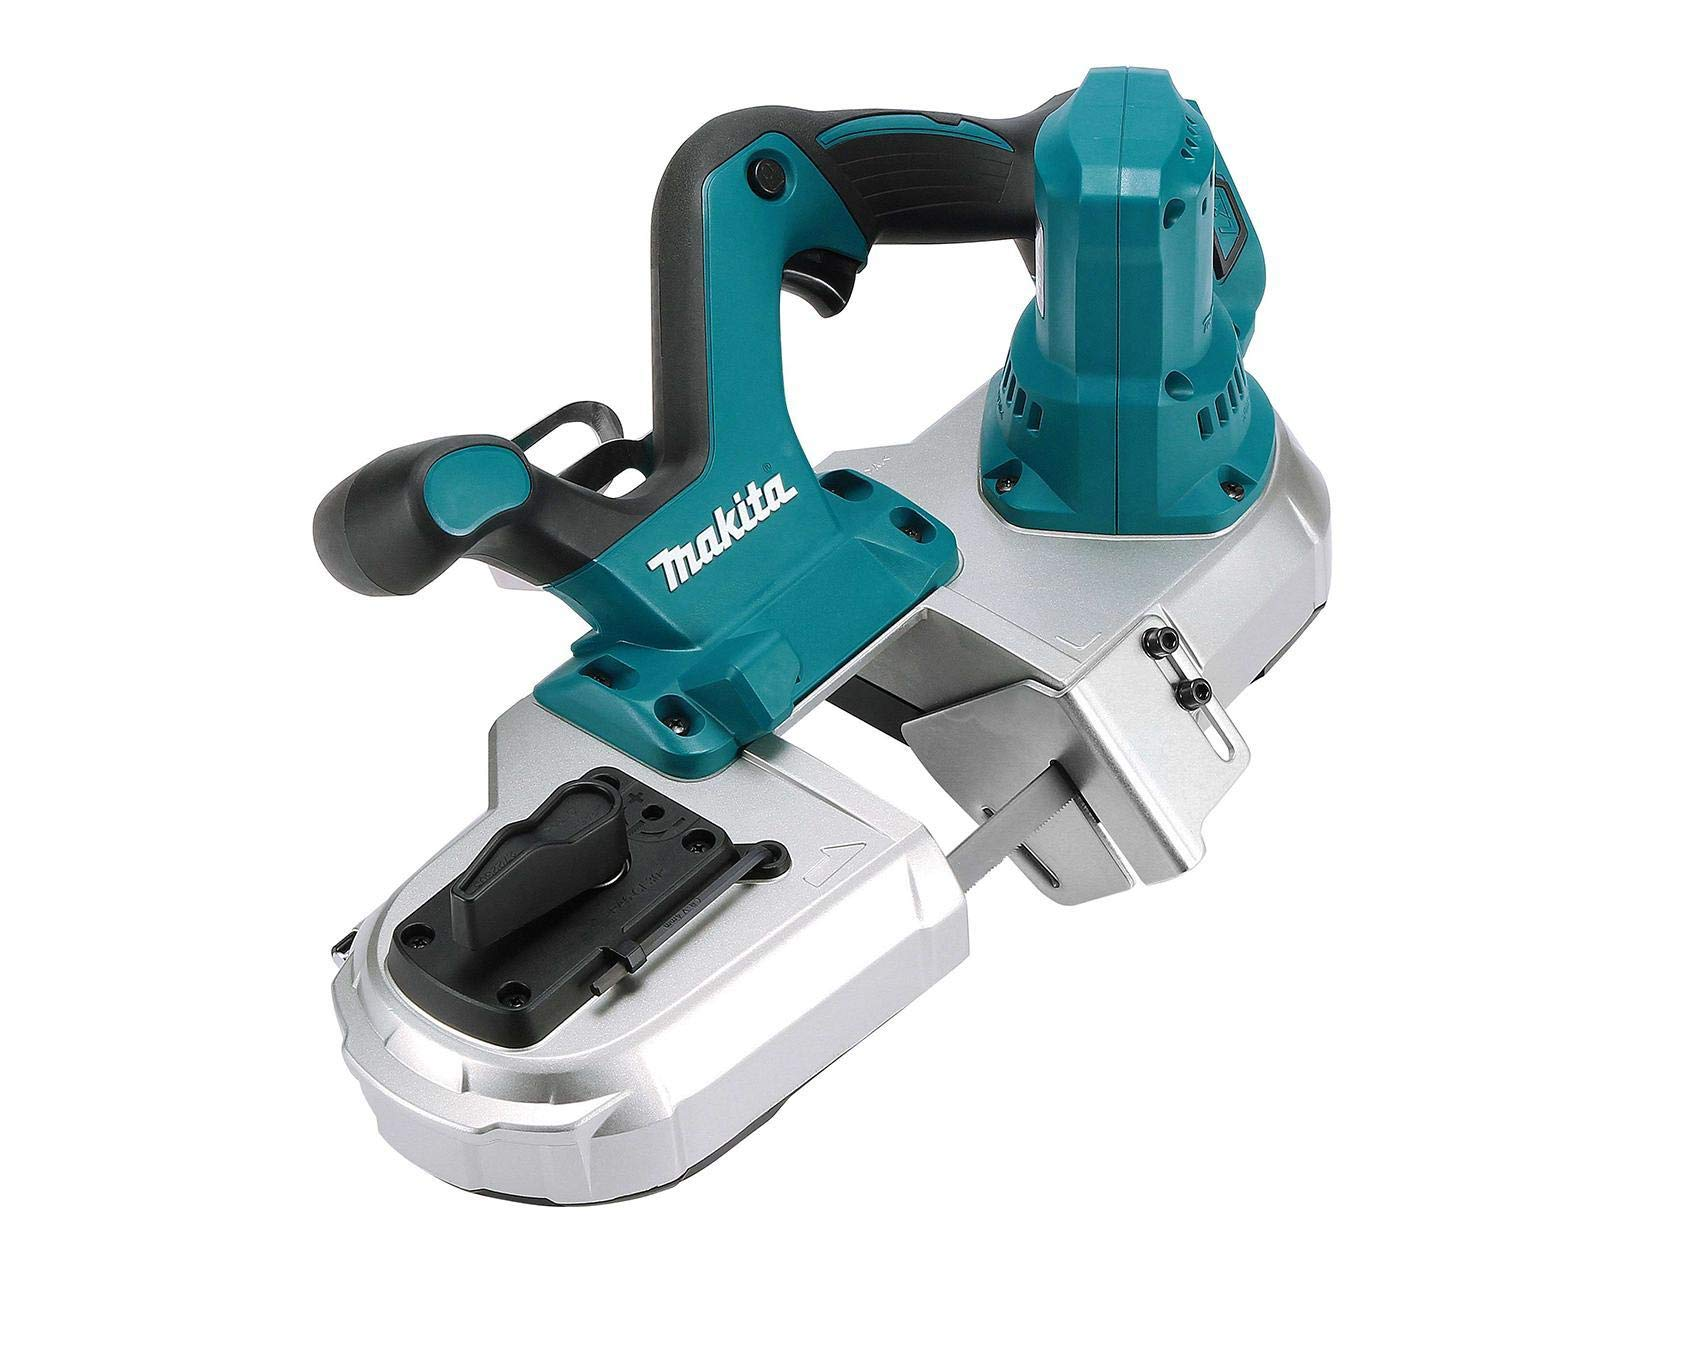 Makita XBP03Z 18V LXT Compact Band Saw, Tool Only by Makita (Image #6)